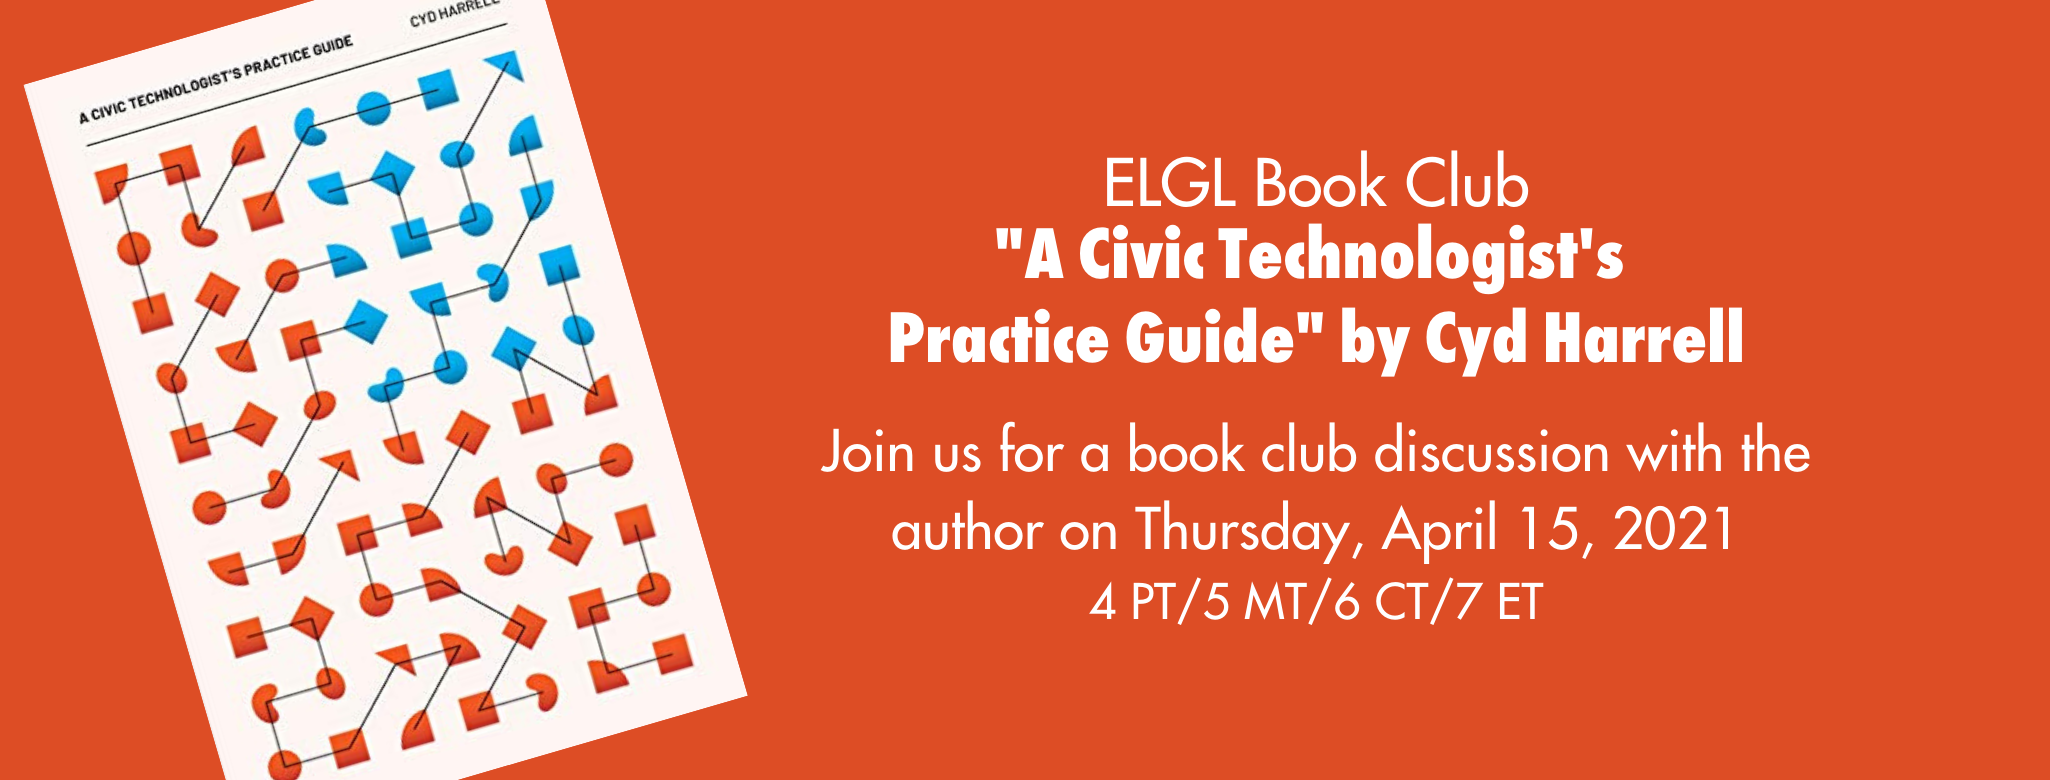 civic technologists book club